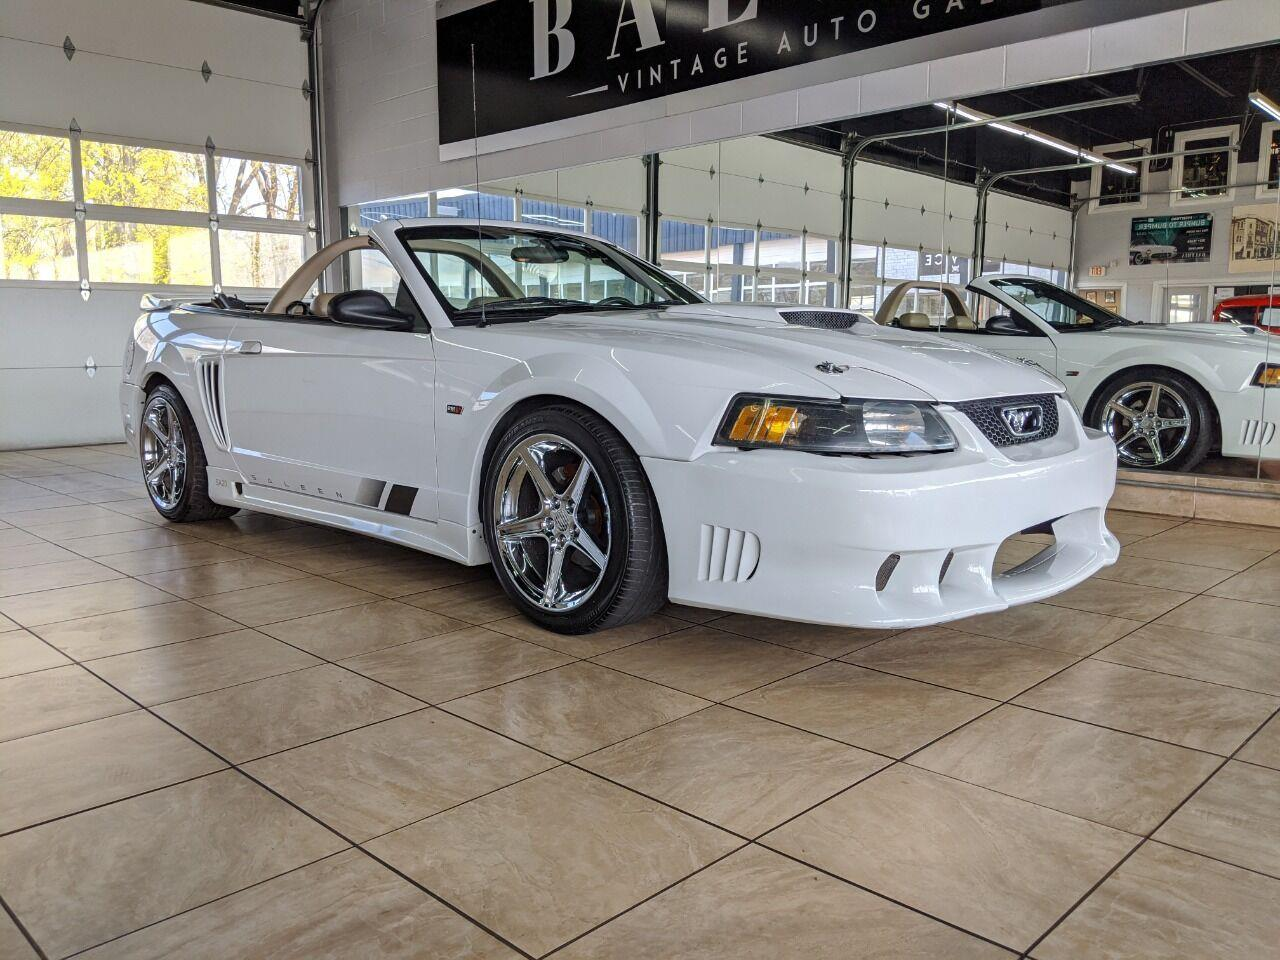 2001 Ford Mustang (CC-1352586) for sale in St. Charles, Illinois